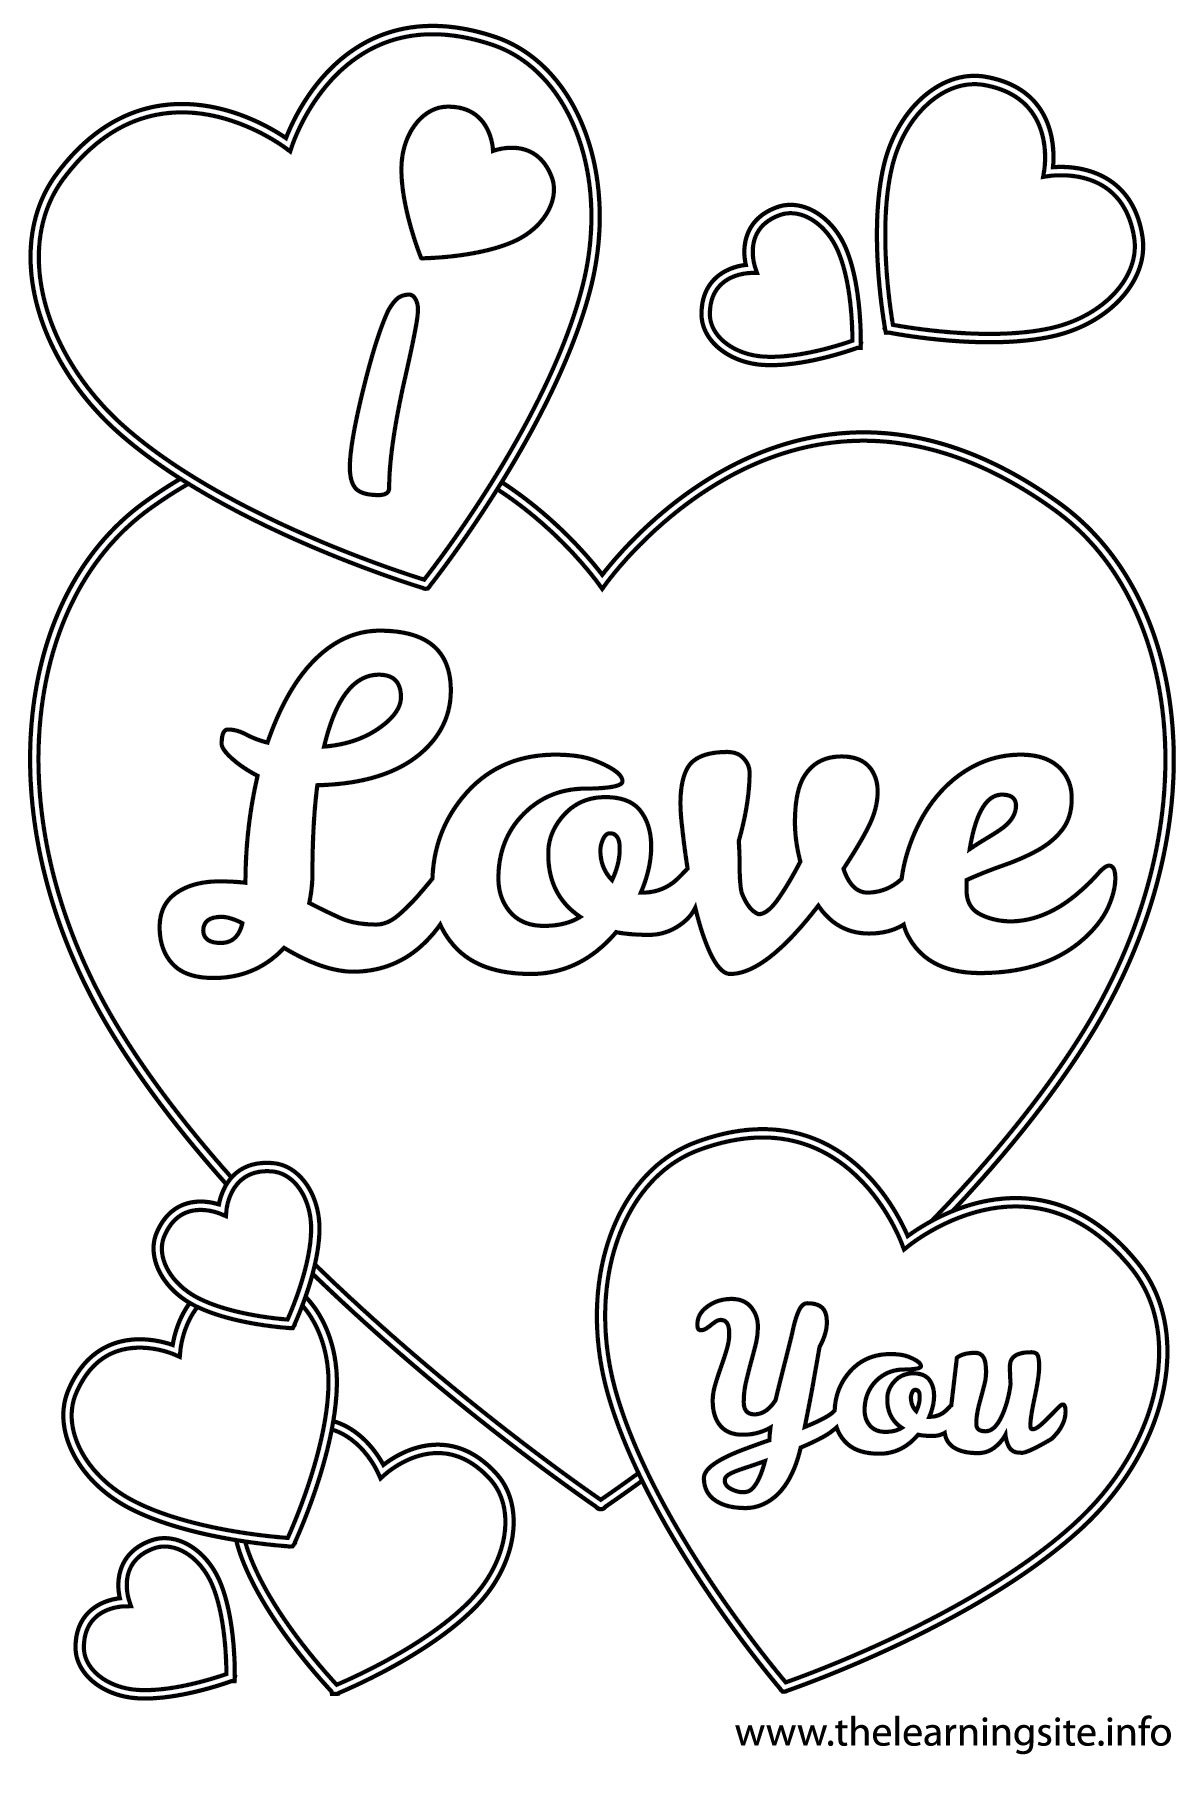 coloring pages of i love you quoti love you quot coloring pages gtgt disney coloring pages i you love coloring pages of